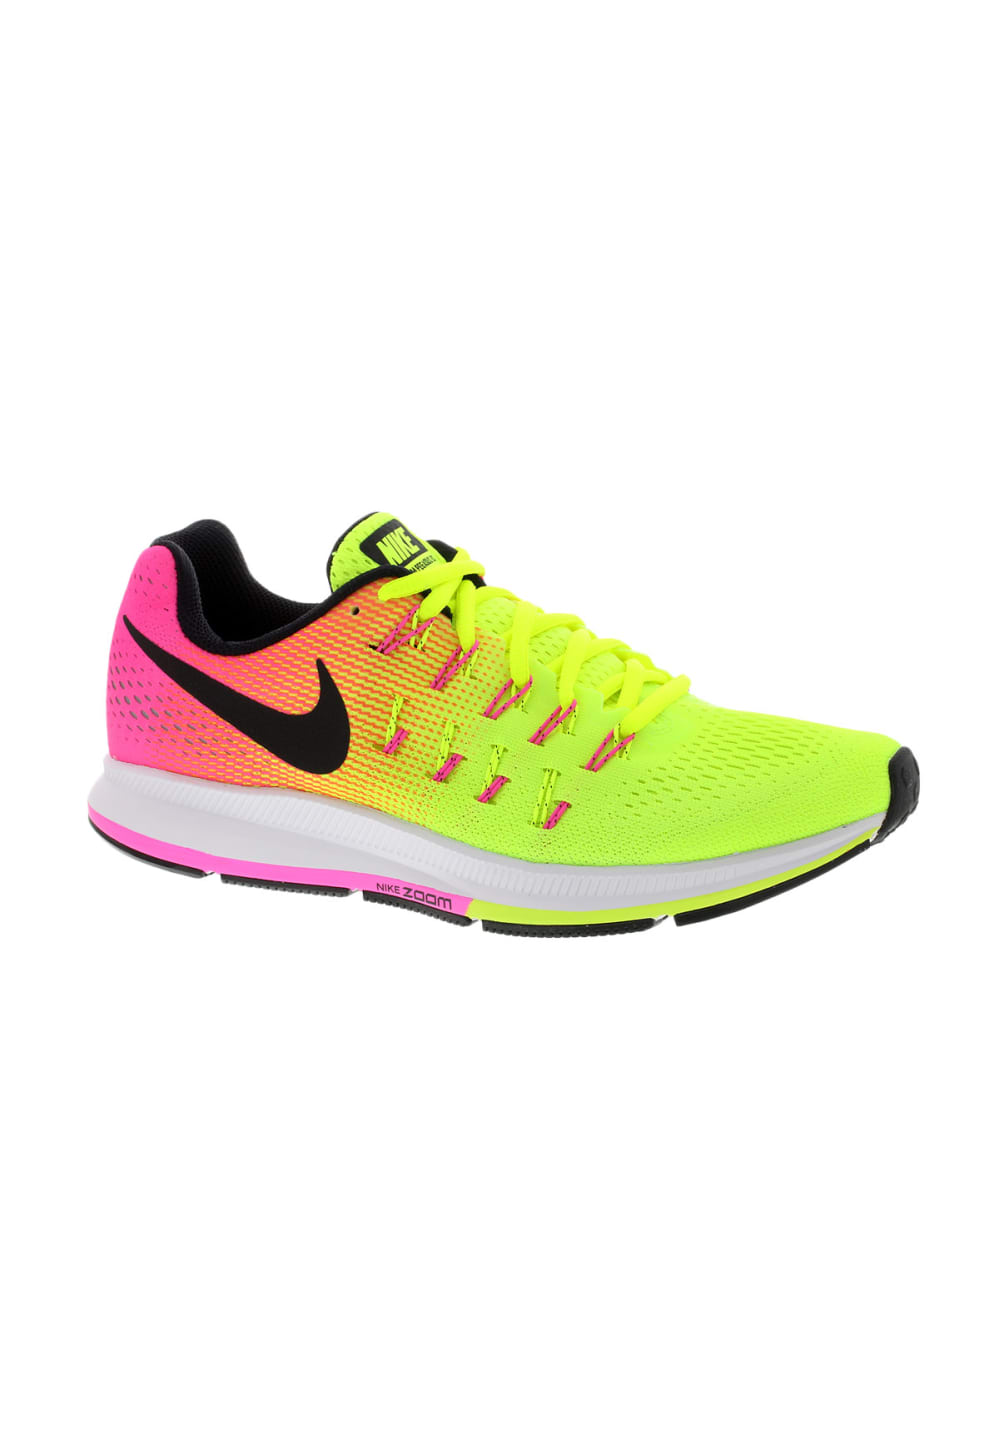 28d7dc46599a ... Nike Air Zoom Pegasus 33 OC - Running shoes for Men - Yellow ...